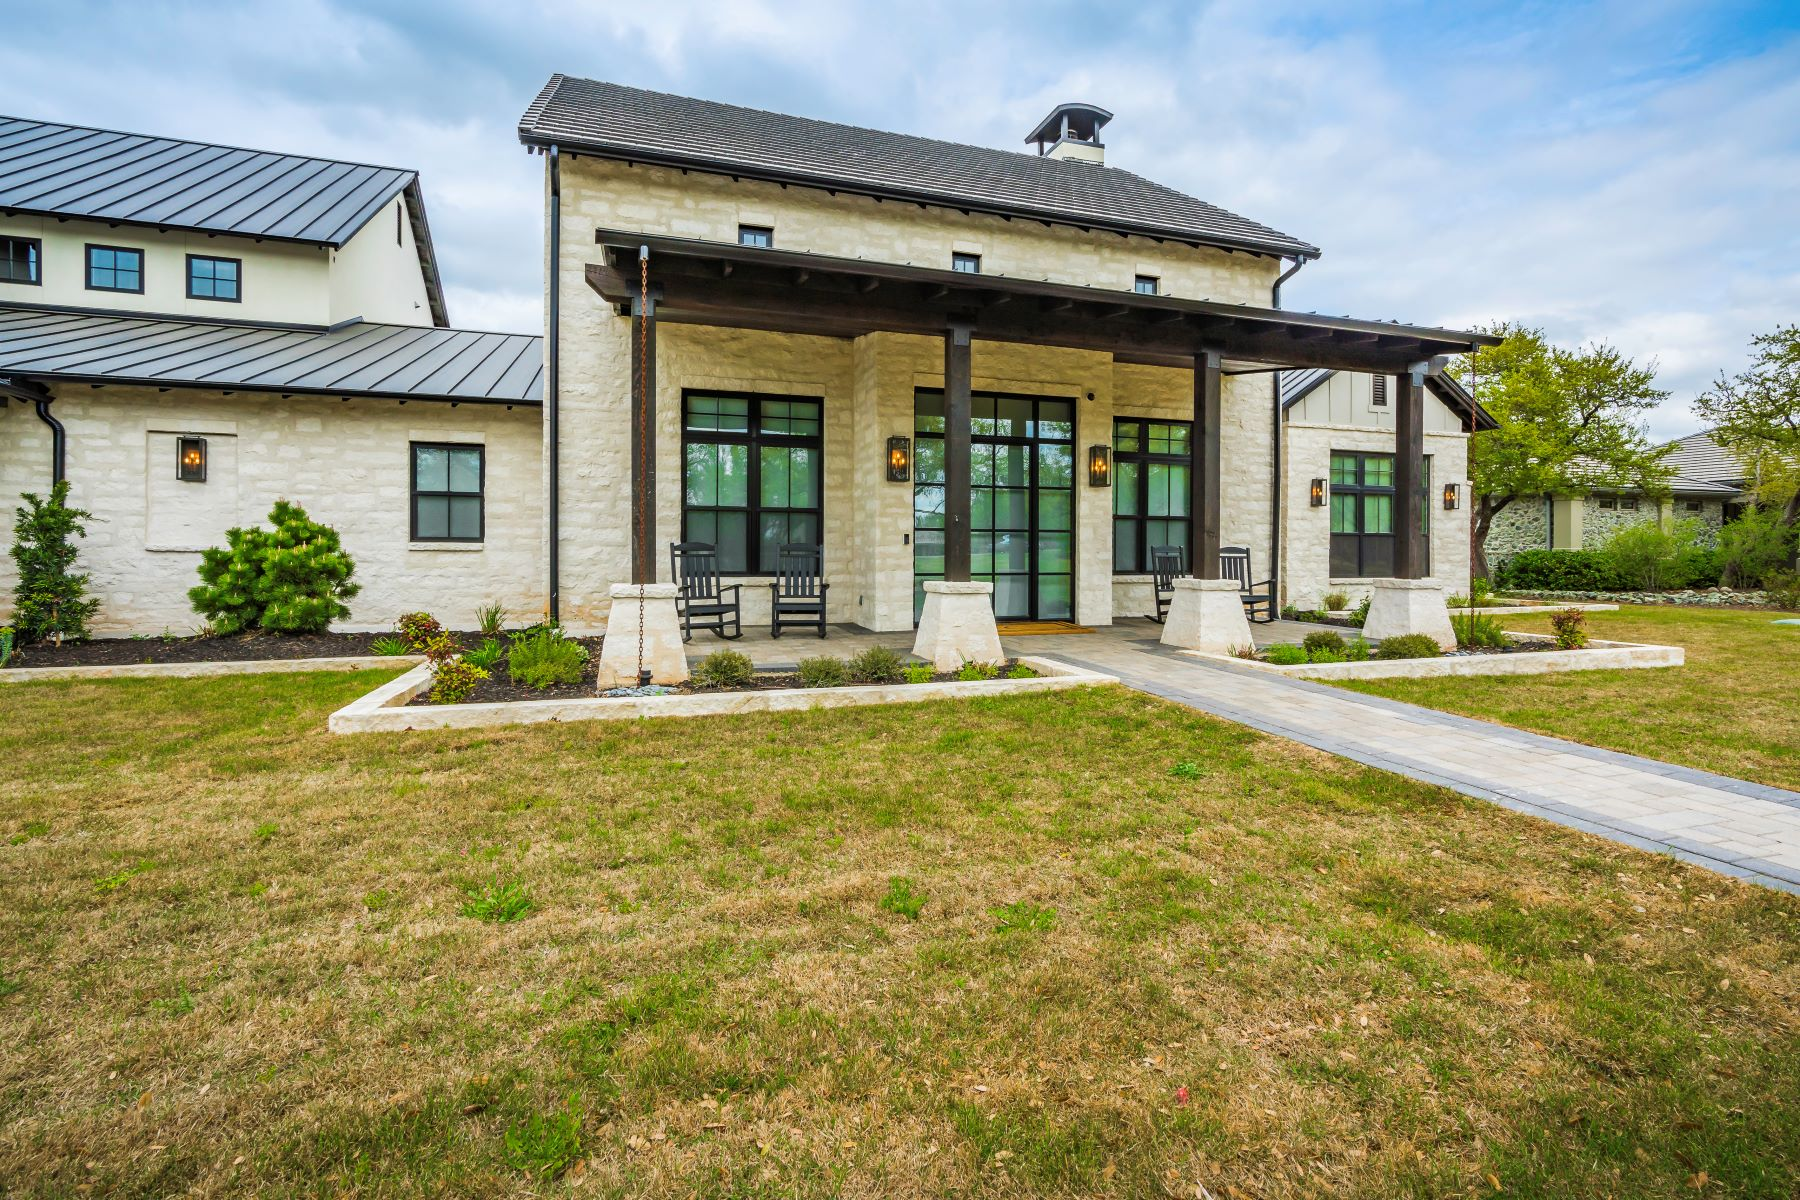 Single Family Homes for Active at 1805 Poco Bueno Court, Spicewood, TX 78669 1805 Poco Bueno Court Spicewood, Texas 78669 United States